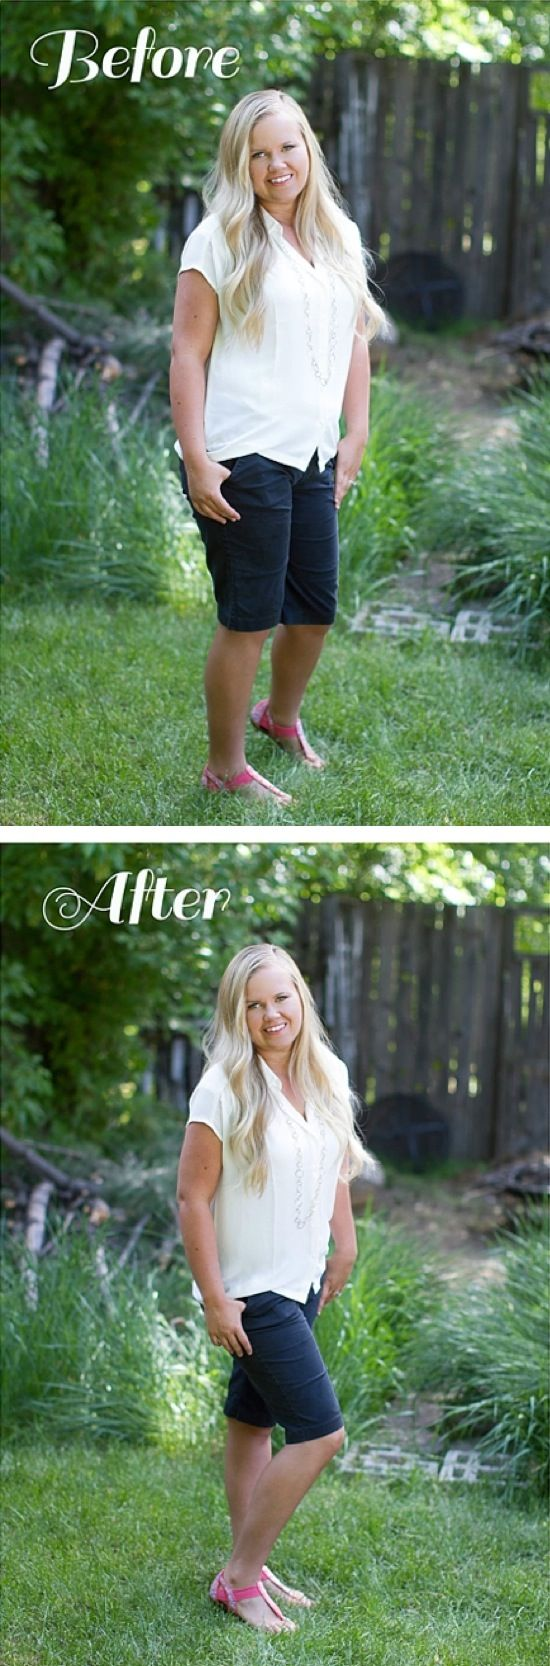 10 Ways To Look Better in Photos | The slimming stance.